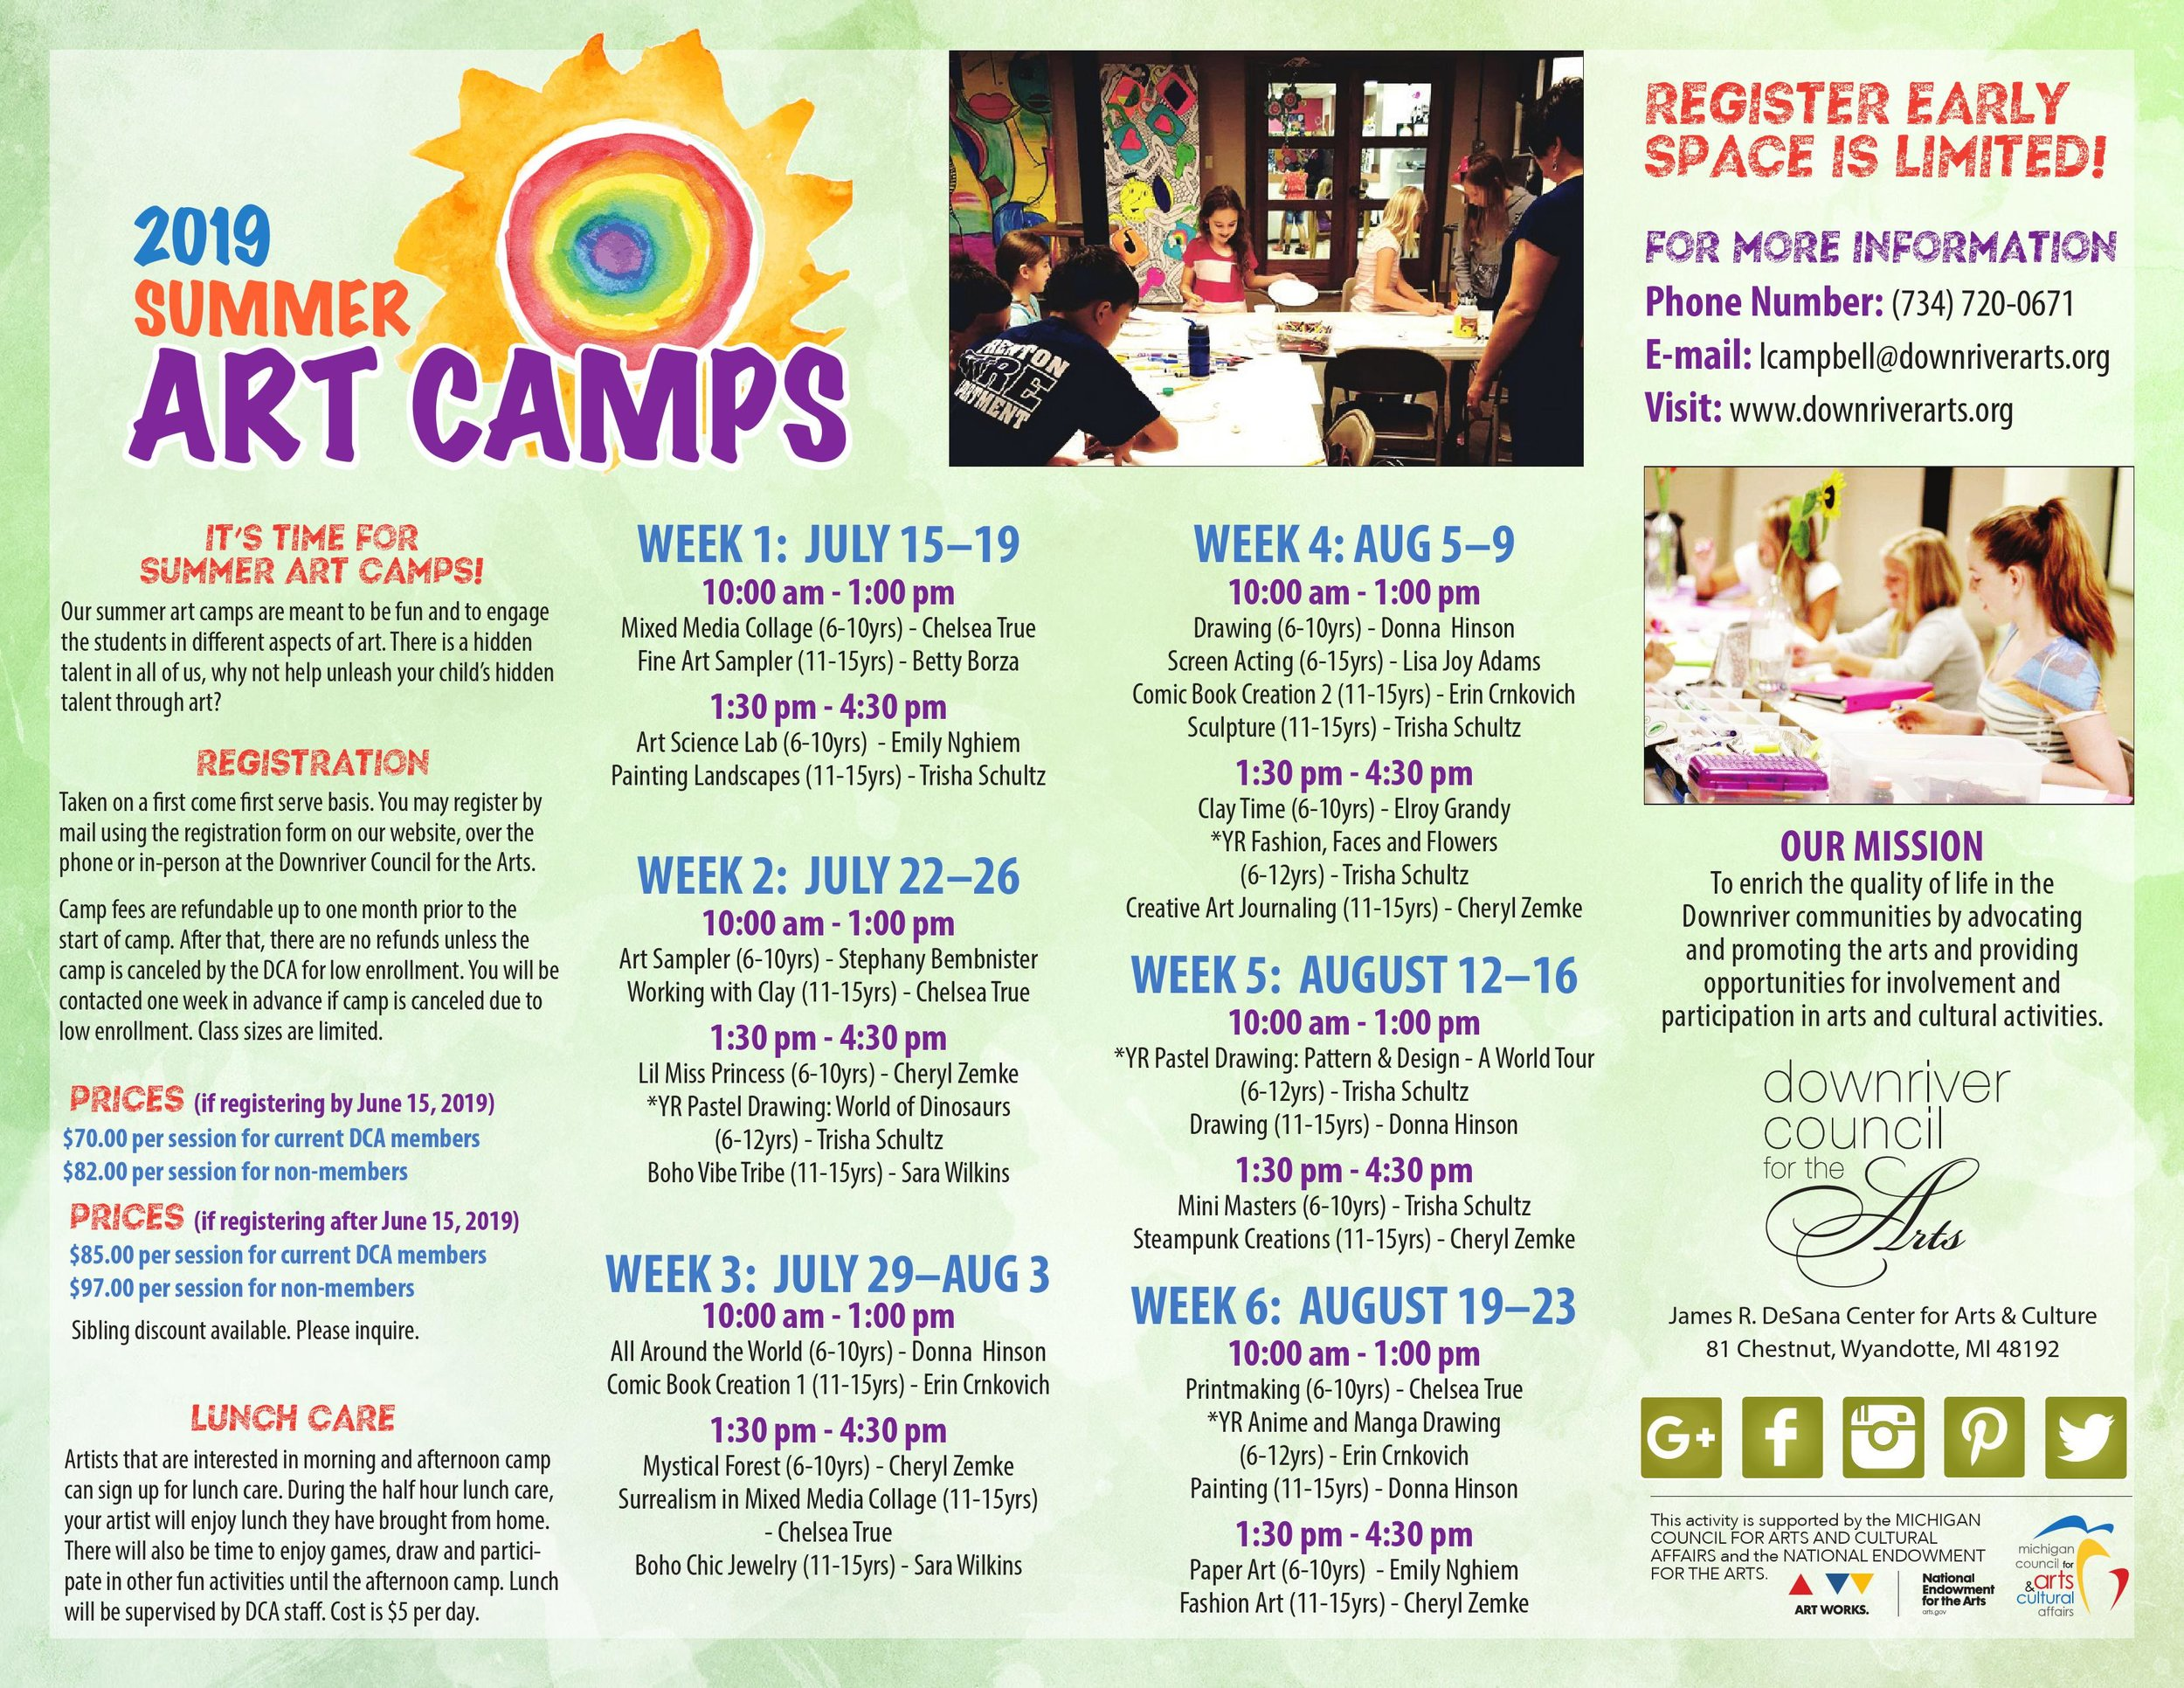 Download the 2019 Summer Art Camp by clicking on the image above.